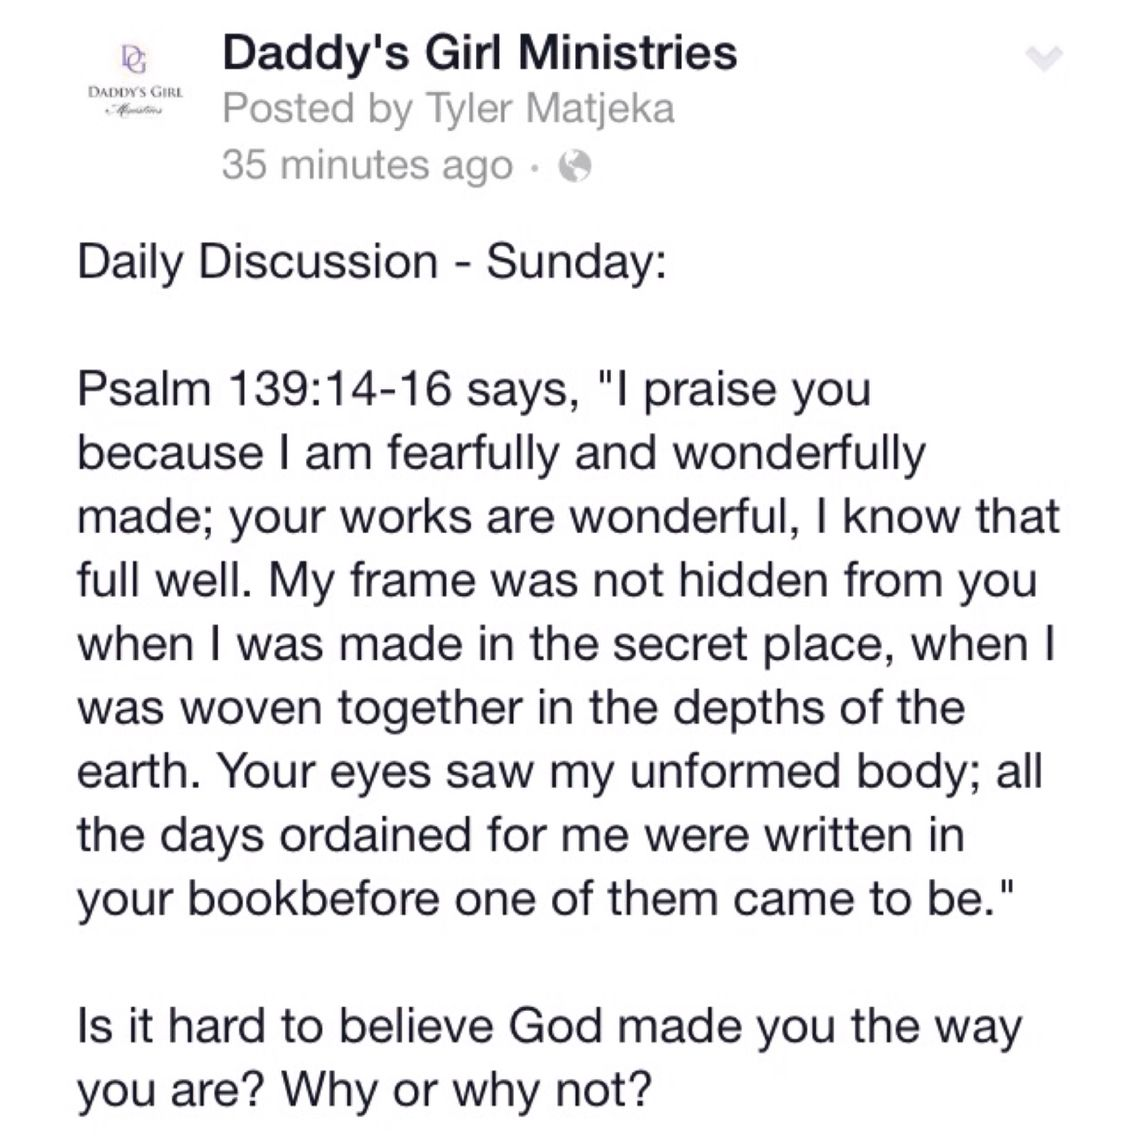 Please join us in our #DailyDiscussion! Today: #Psalm 139:14-16 says ...